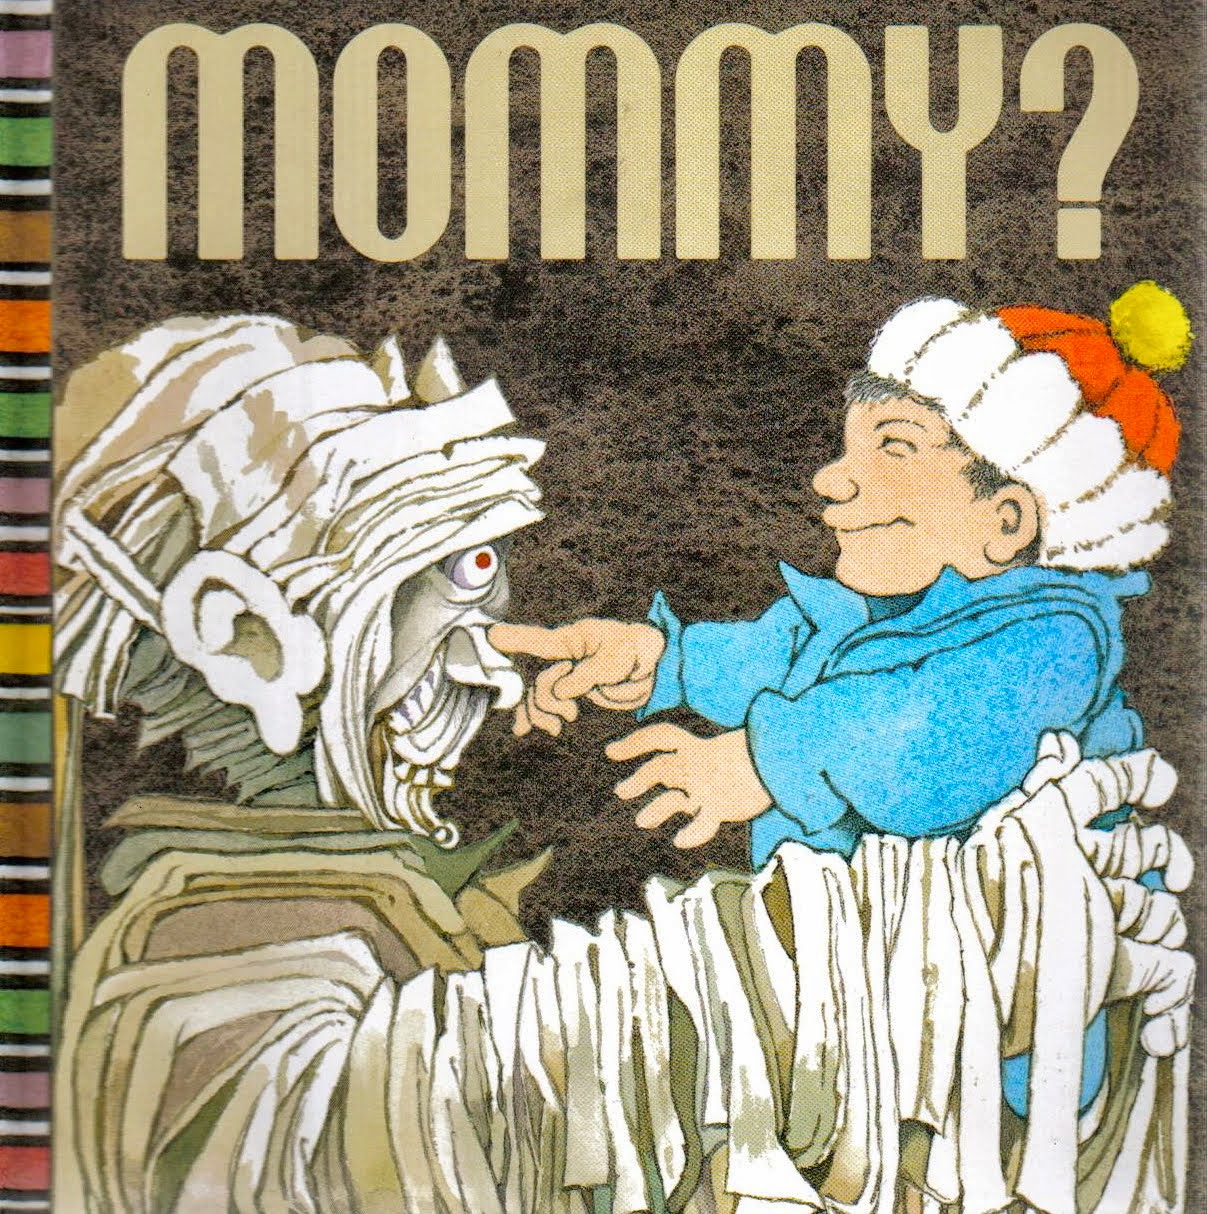 Mommy? by Maurice Sendak